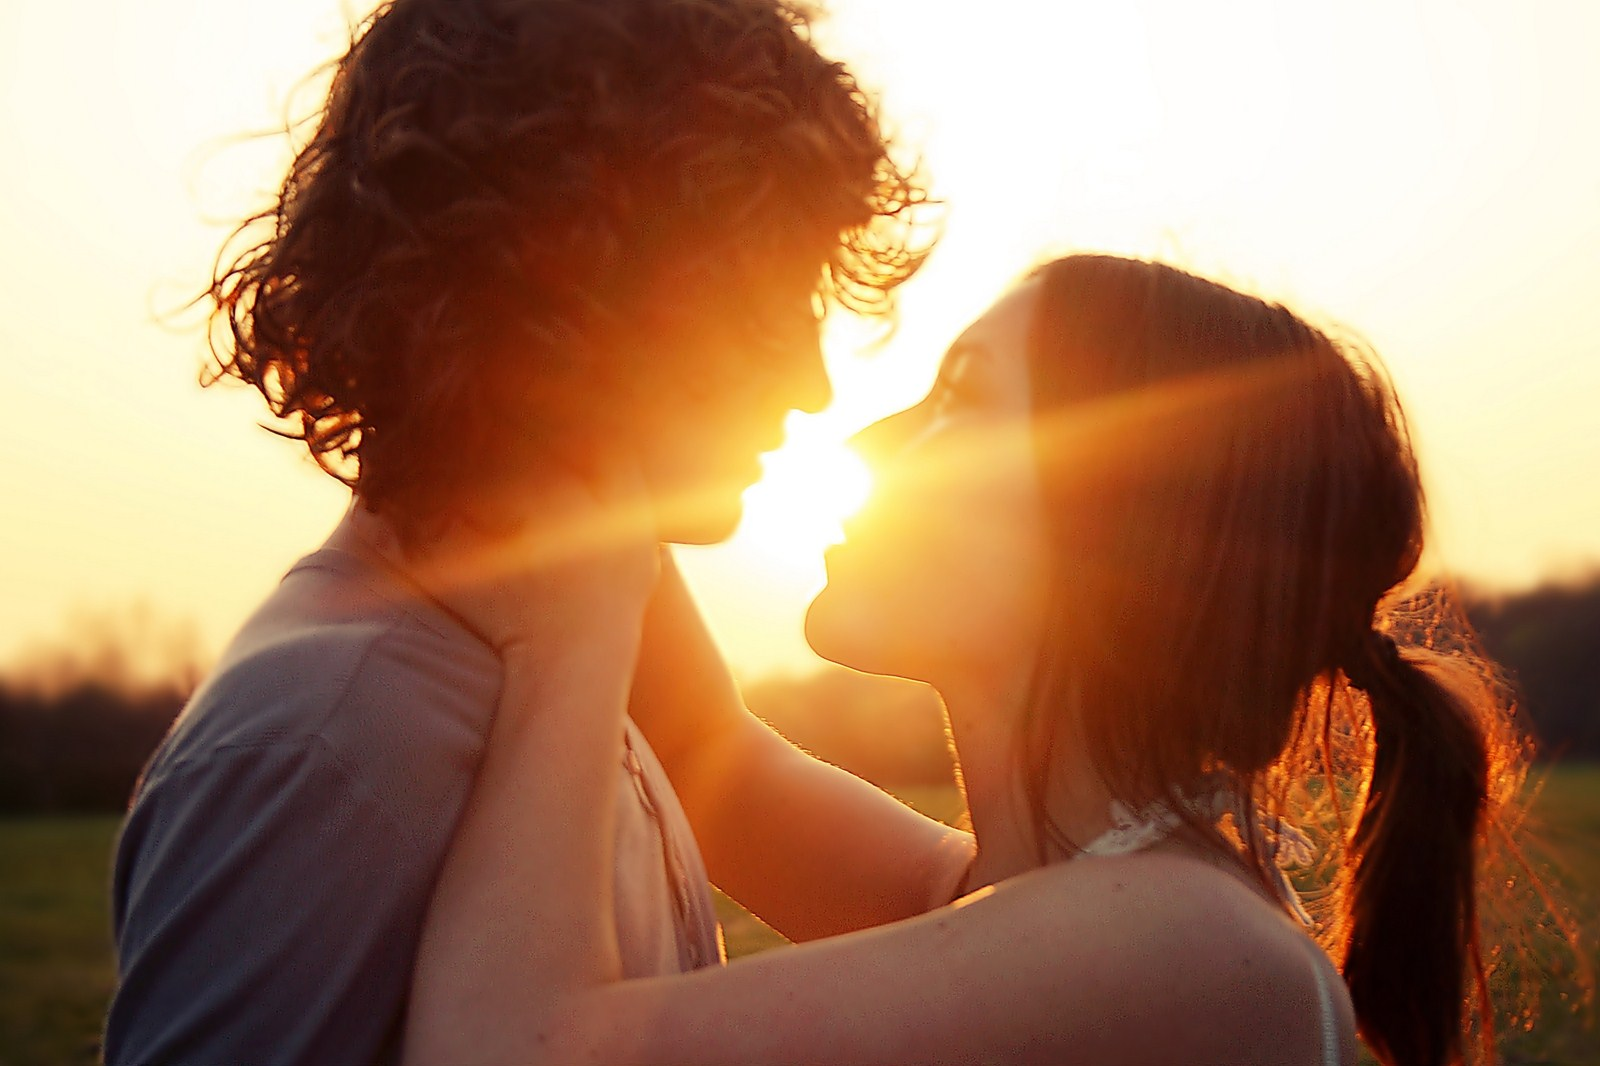 Romantic Moments Hd Wallpapers And Pictures Enjoy New And: Sun Summer Love Couple Magic Moment Mood Romance Photo HD